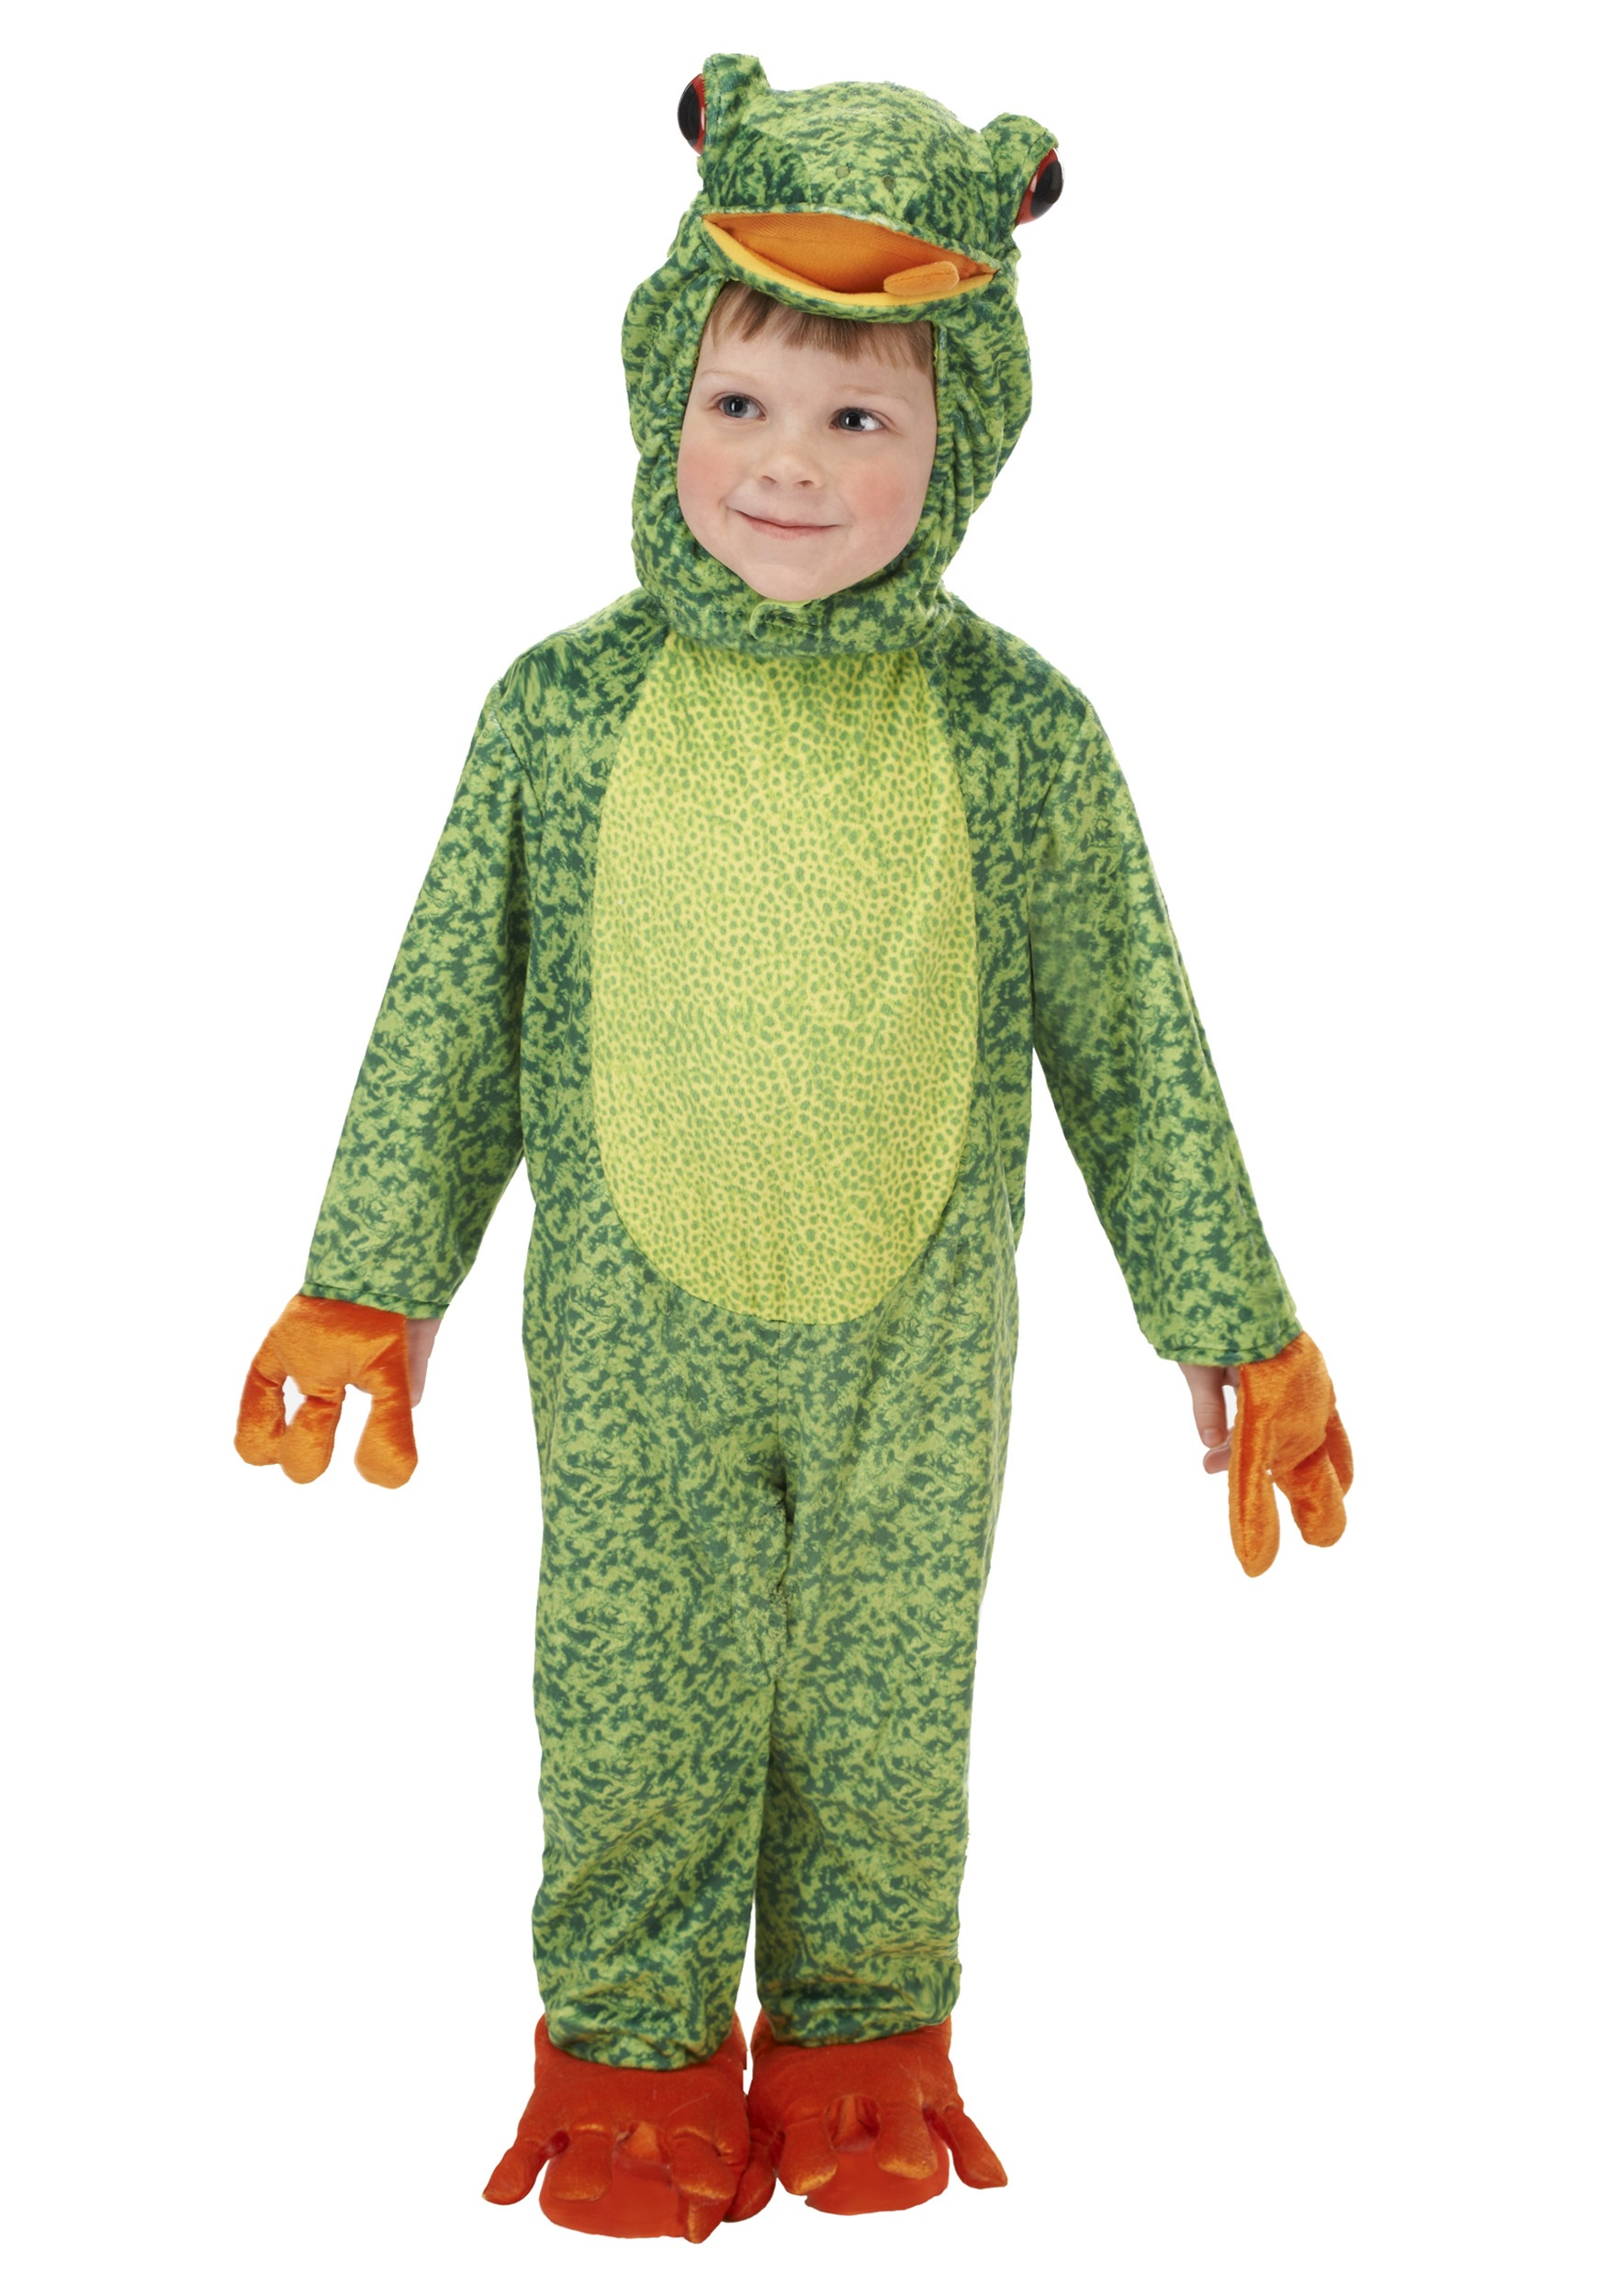 Toddler Pond Frog Costume  sc 1 st  Halloween Costumes & Toddler Pond Frog Costume - Halloween Costumes